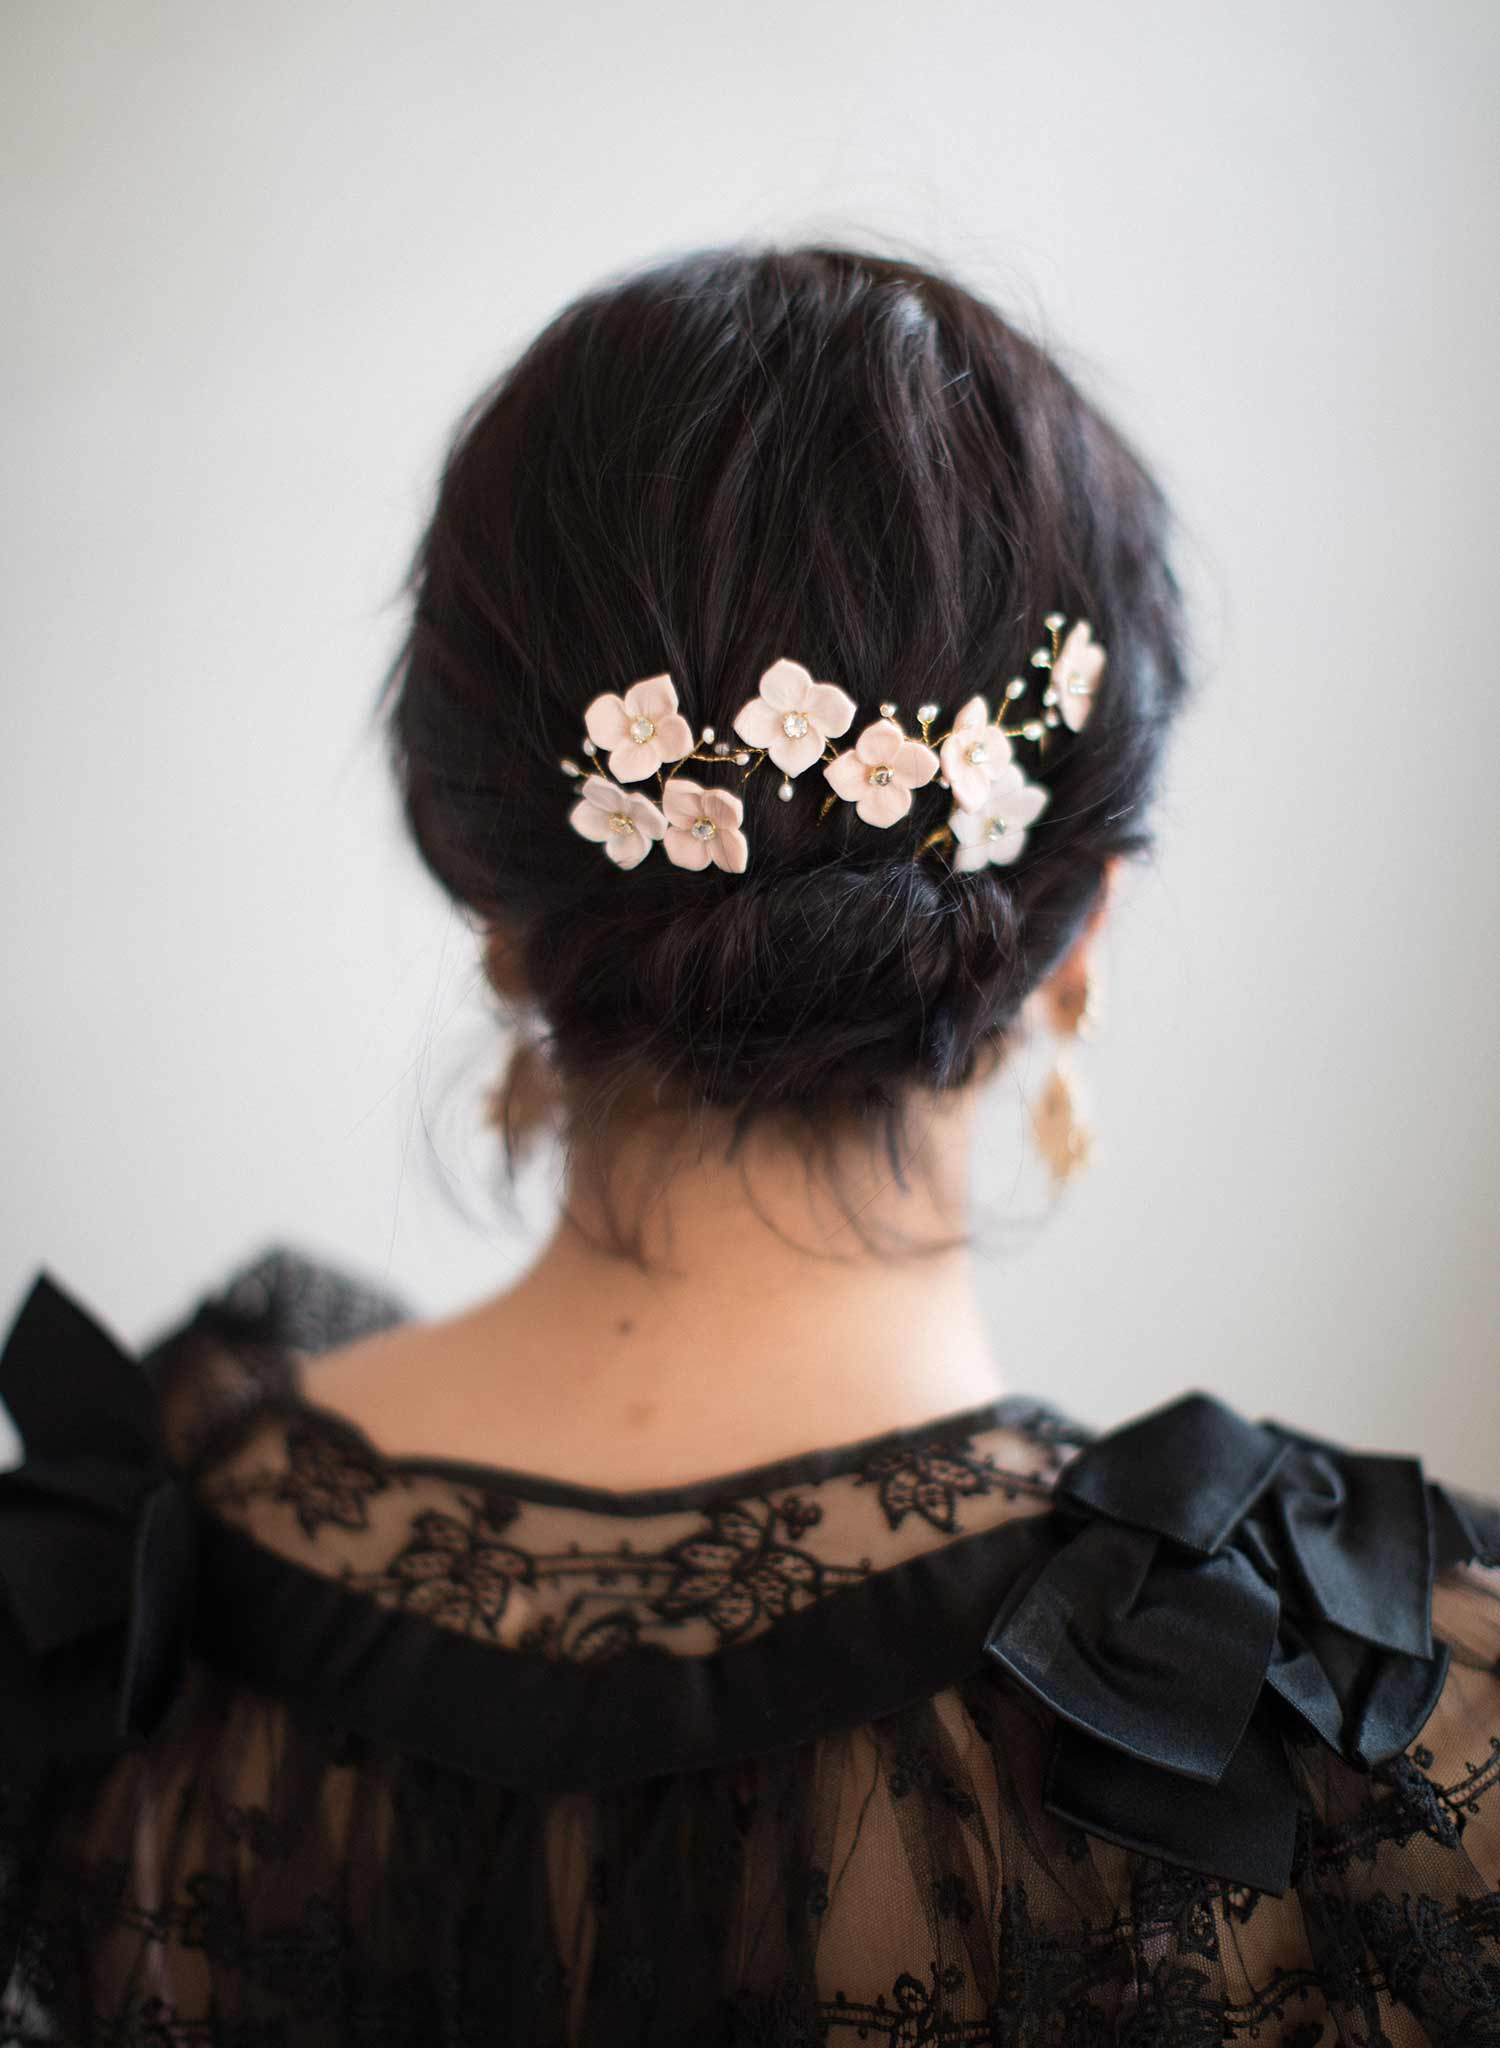 Blossom and pearl hair pin set of 4 - Style #838